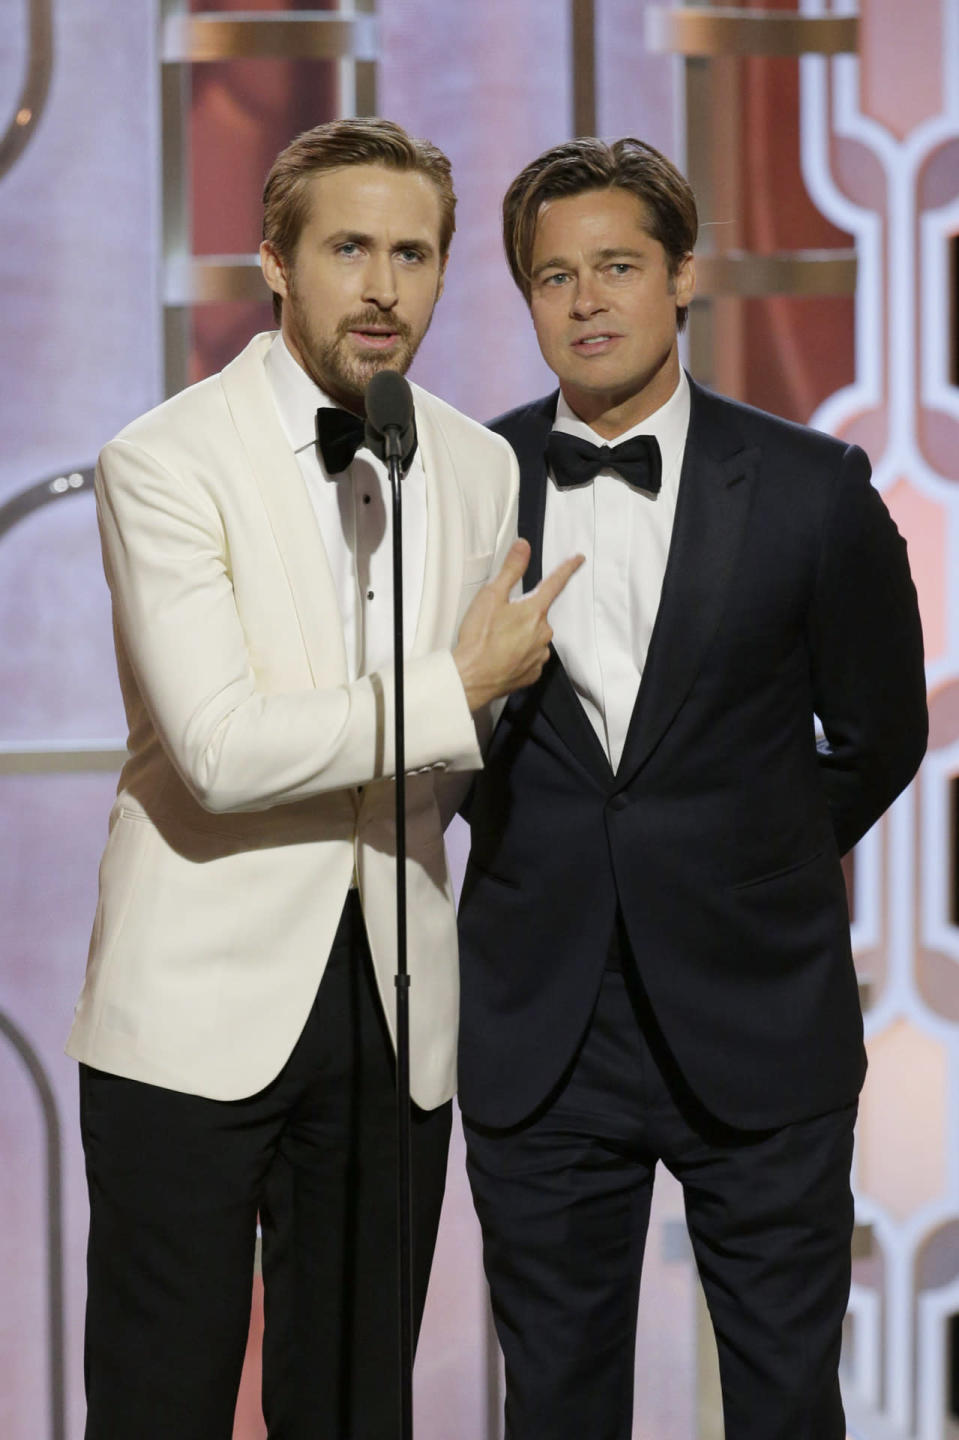 Ryan Gosling in a white tuxedo jacket with Brad Pitt, sporting some new side bangs, at the 73rd Golden Globe Awards.